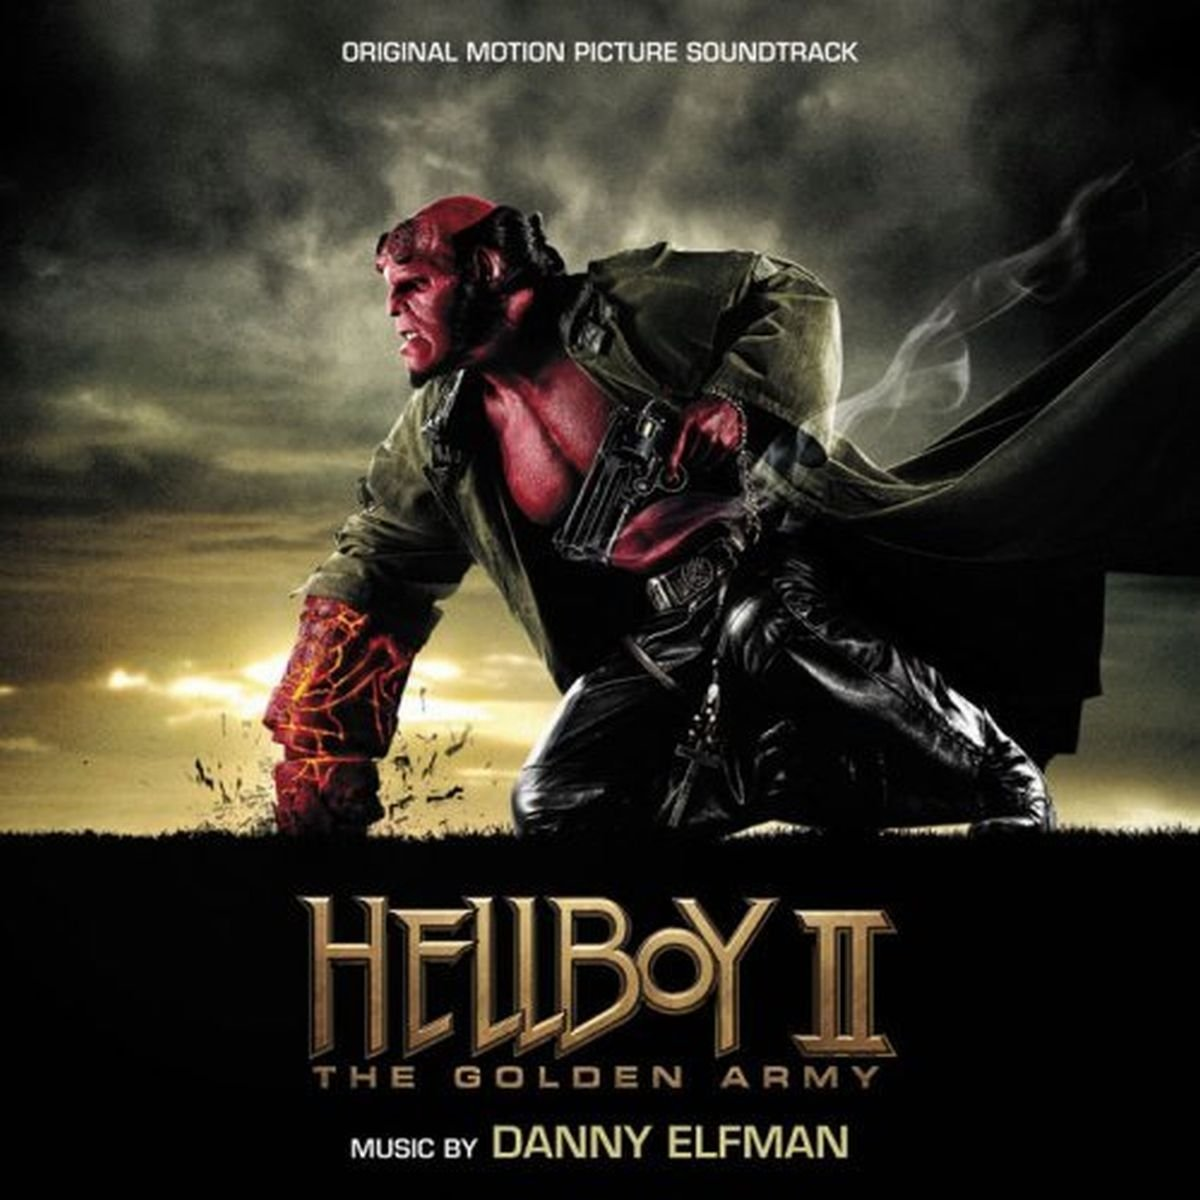 Danny Elfman - Hellboy 2 (OST) - Amazon.com Music